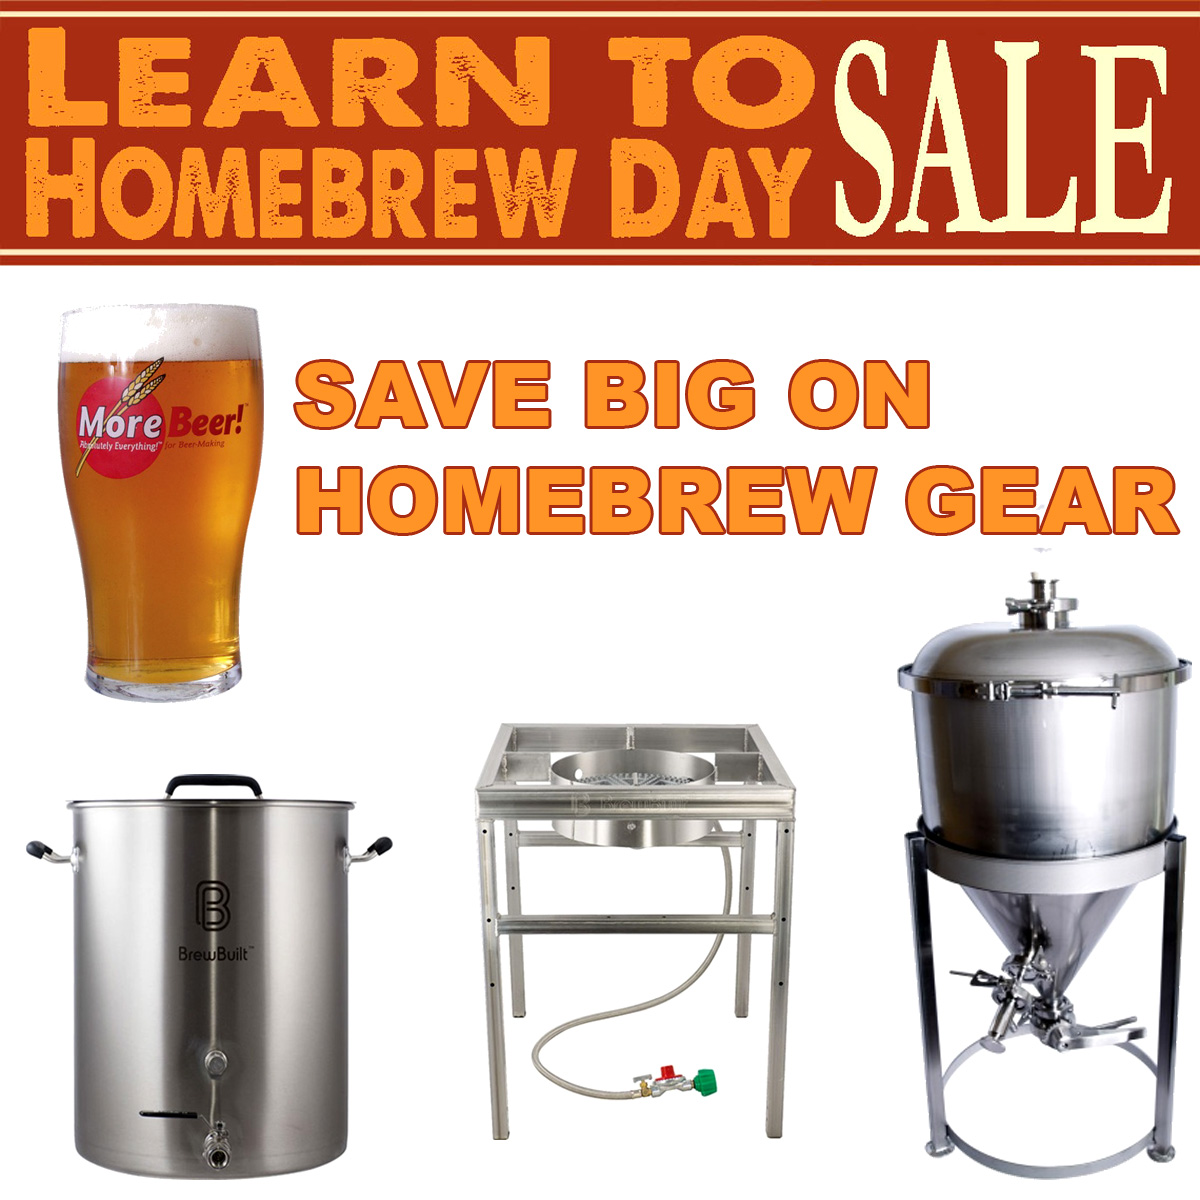 Home Brewer Promo Code for Save Up To 25% On Popular Home Brewing Items Coupon Code